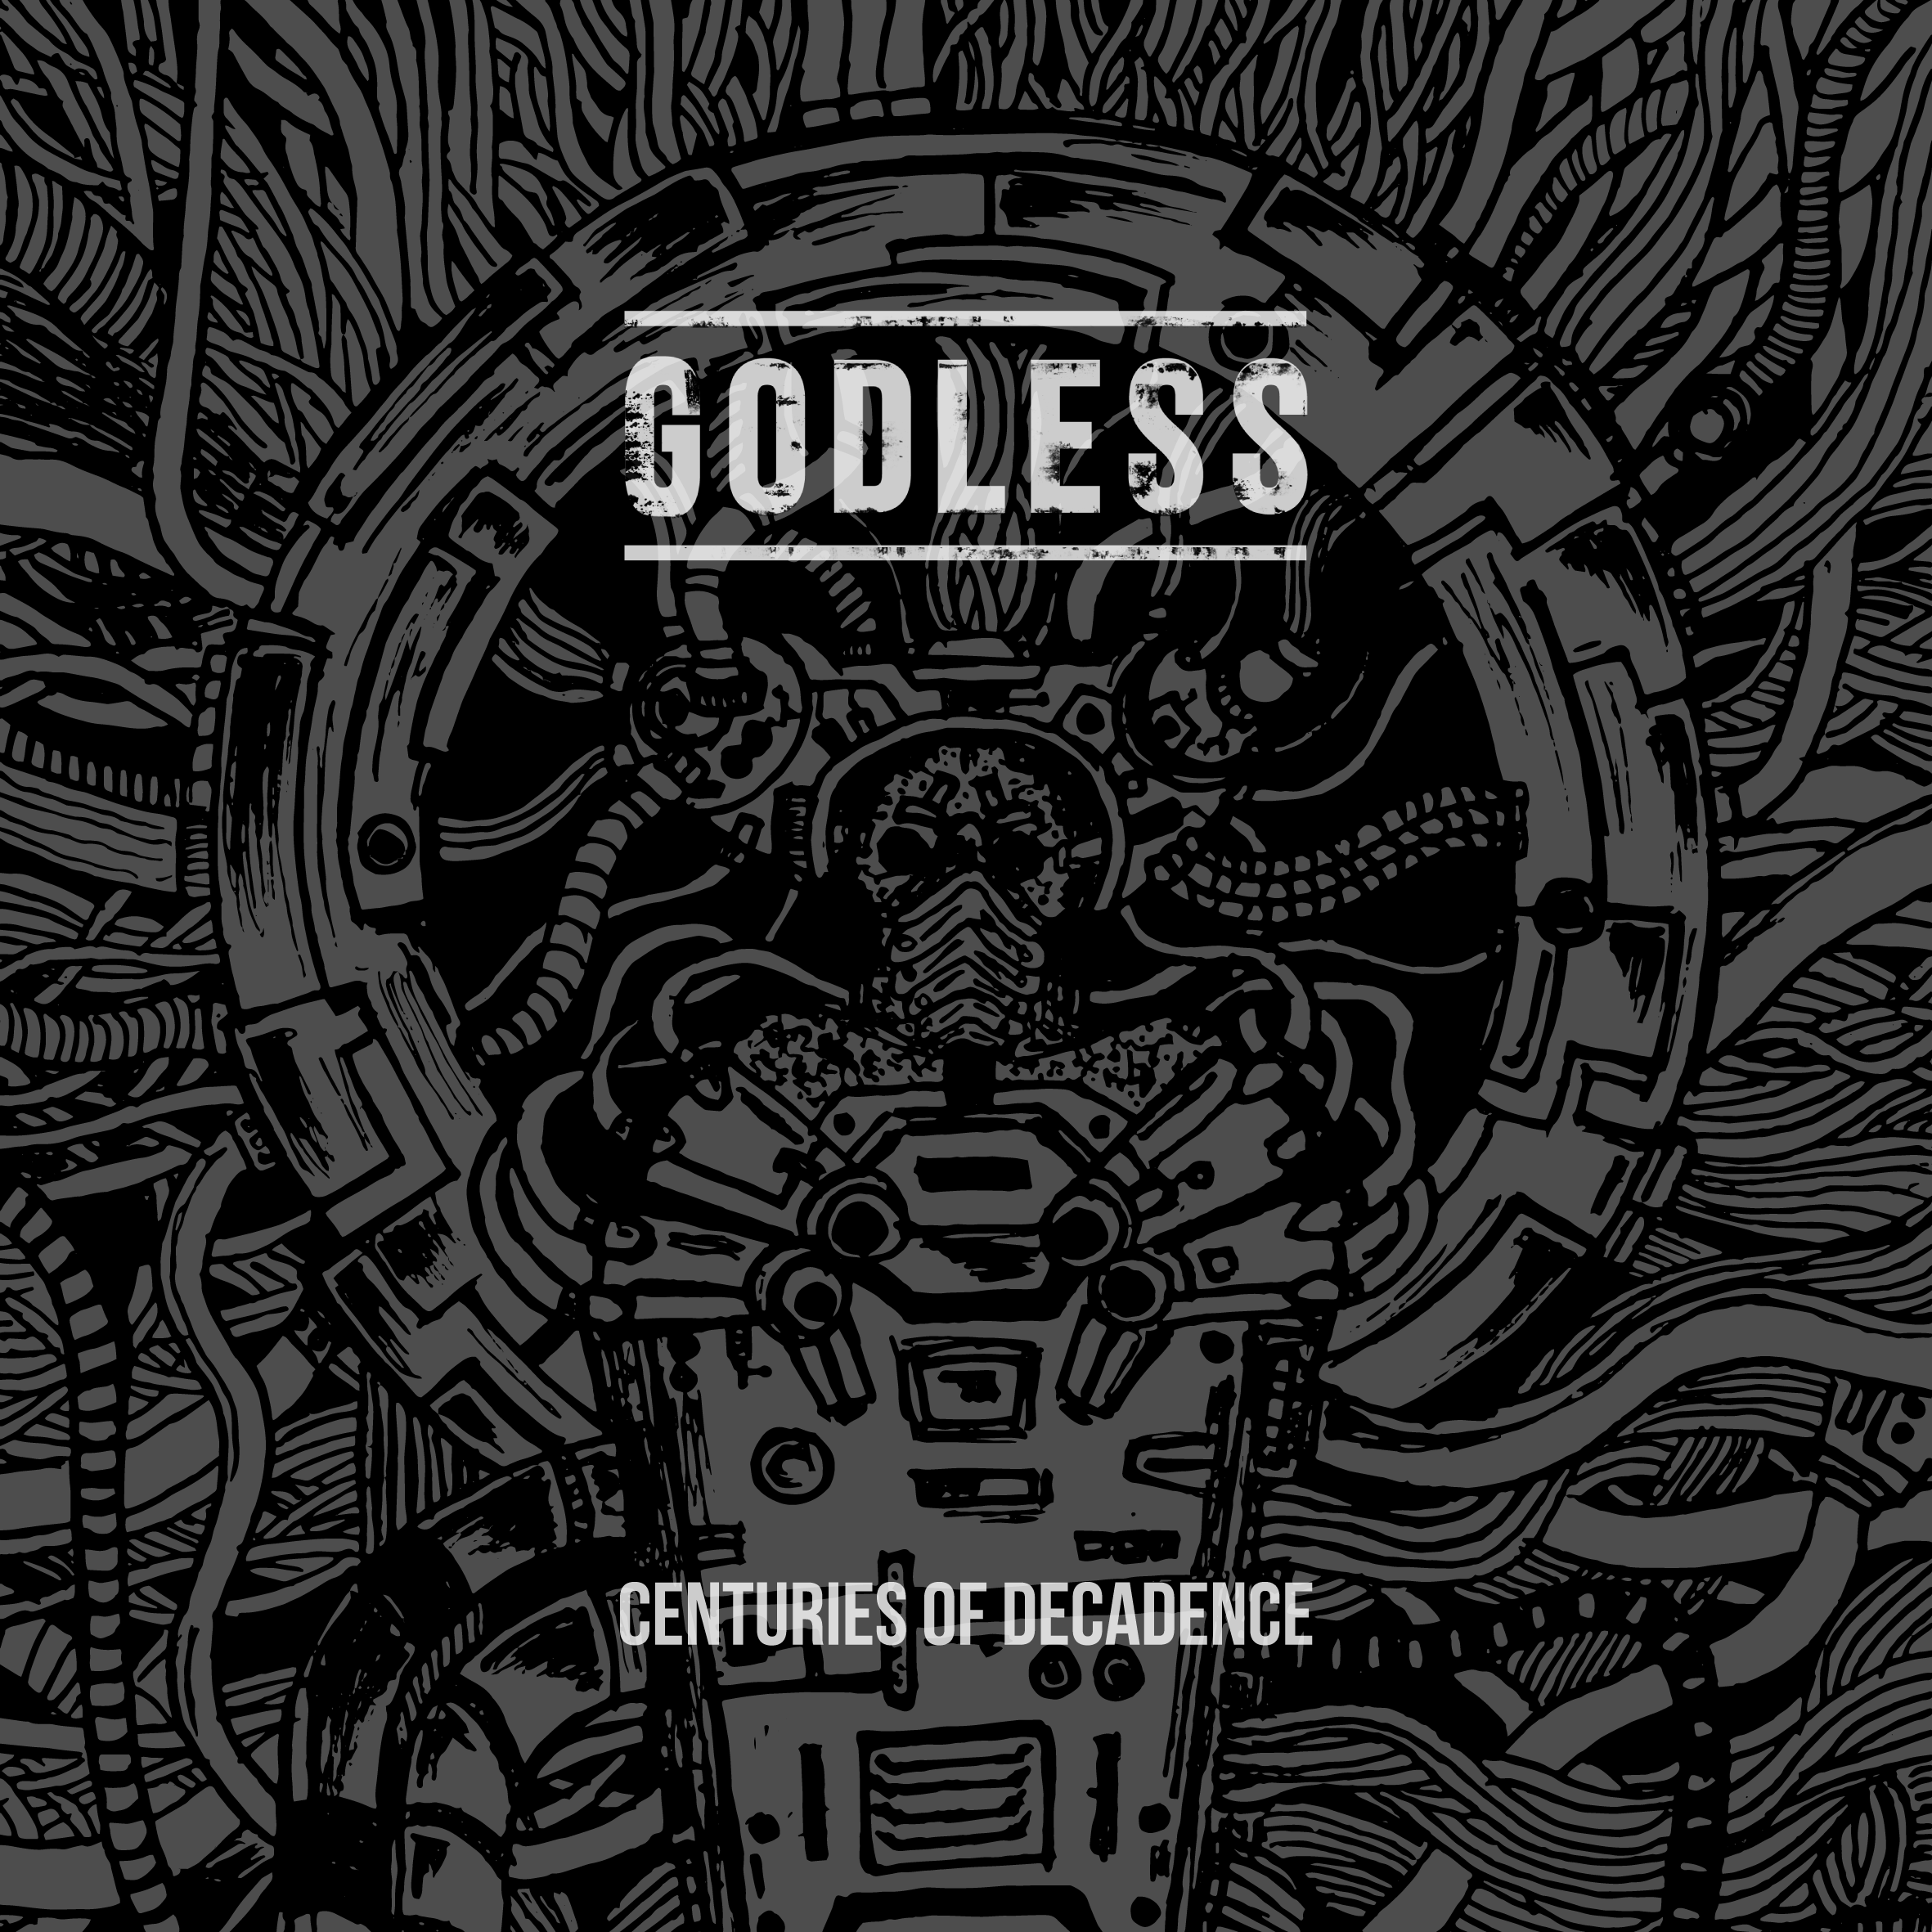 Godless - Let There Be Darkness